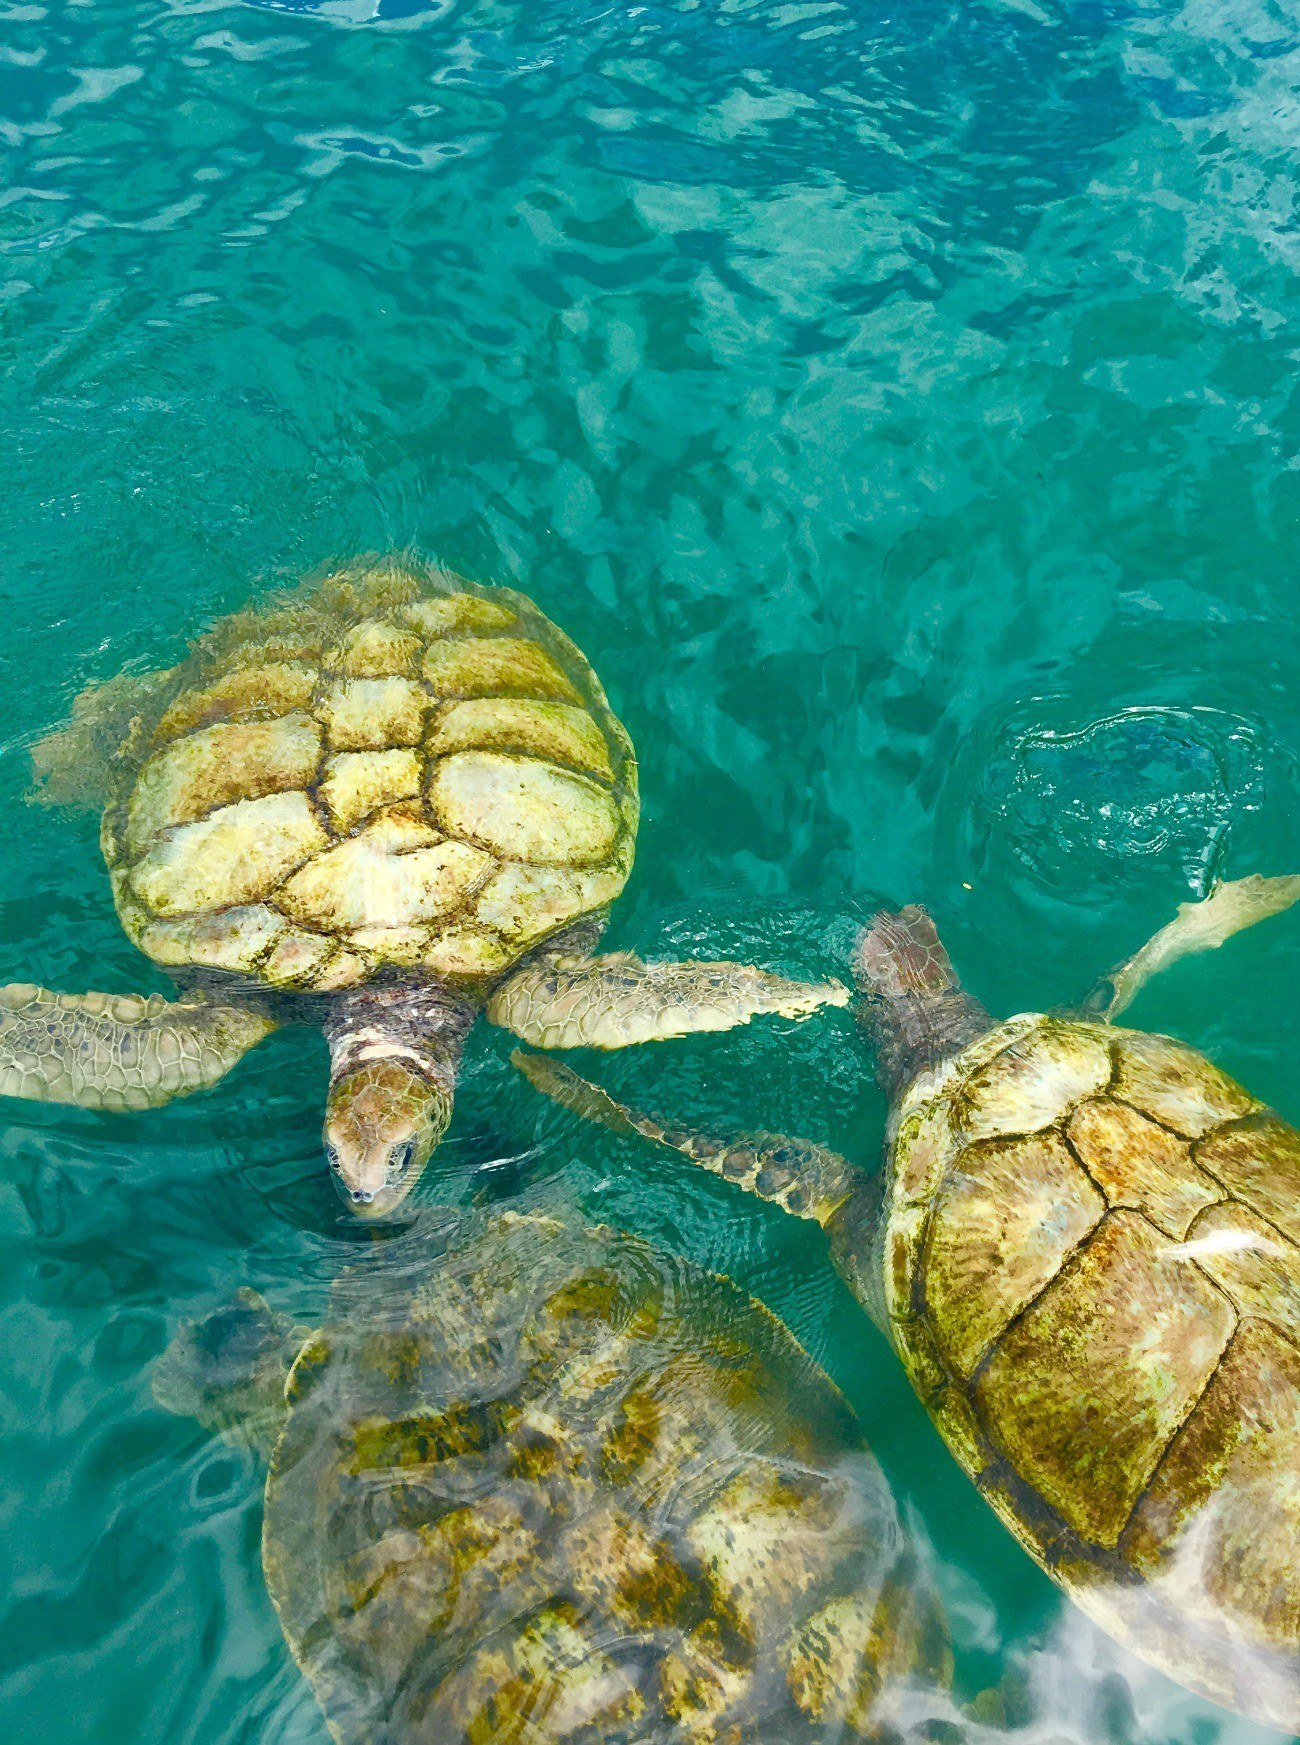 Turtles huddled together in the water at Cayman Turtle Centre.